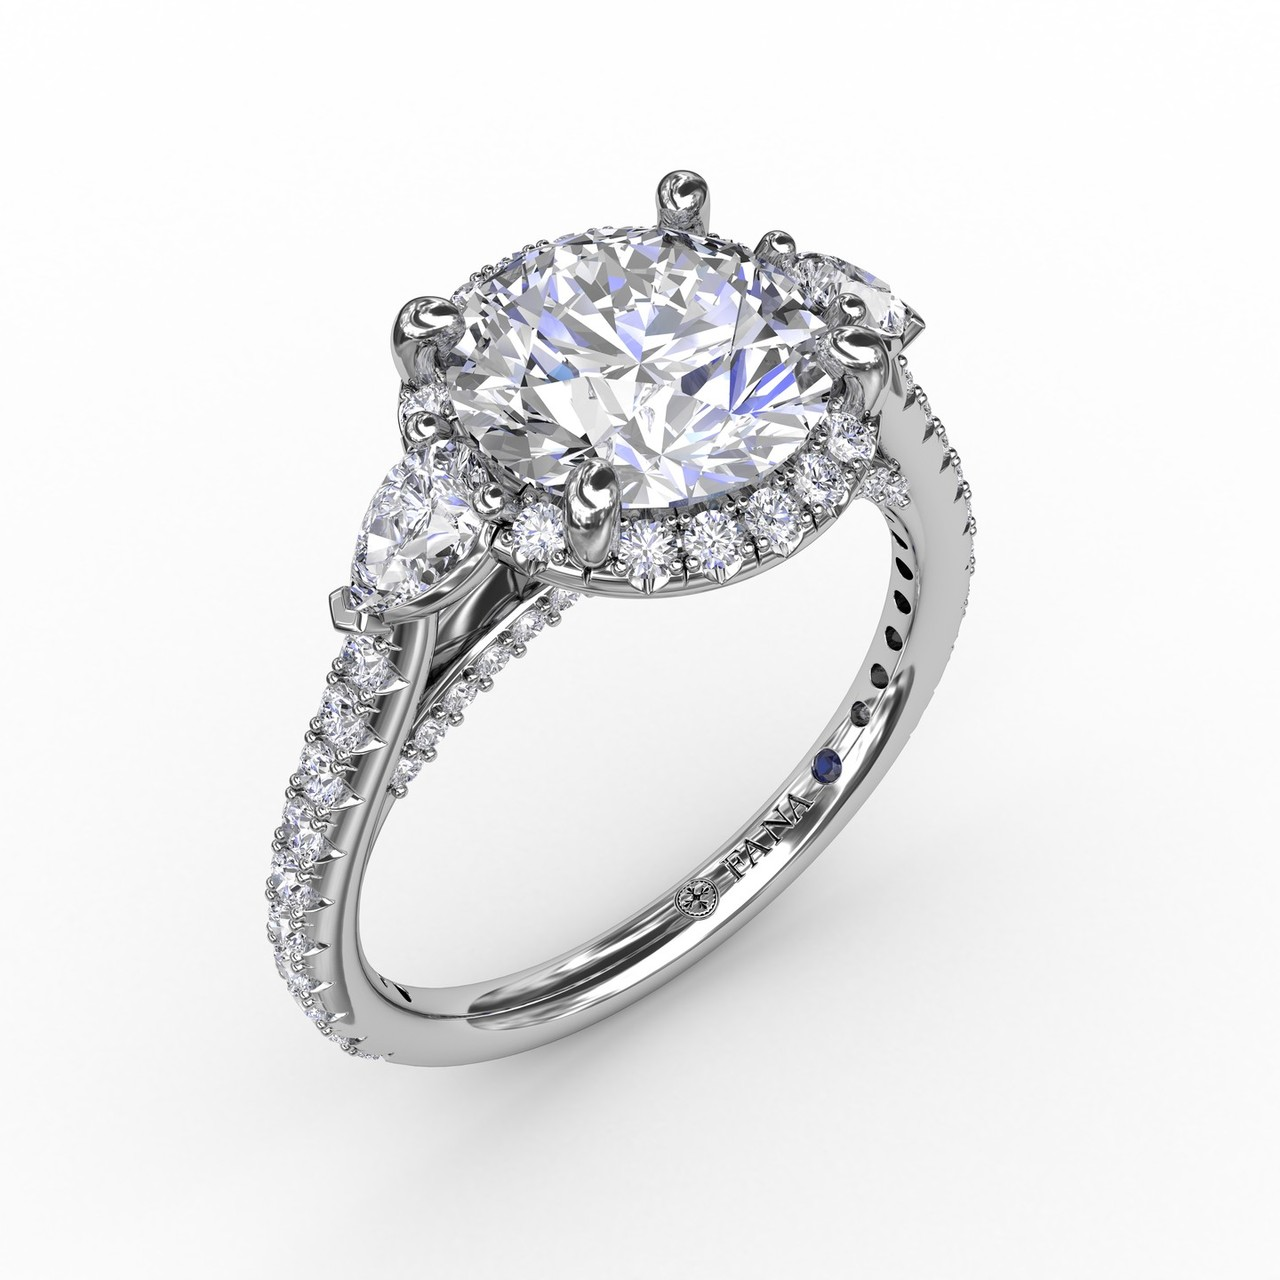 Round Diamond Halo Engagement Ring With Pear-Shape Side Stones